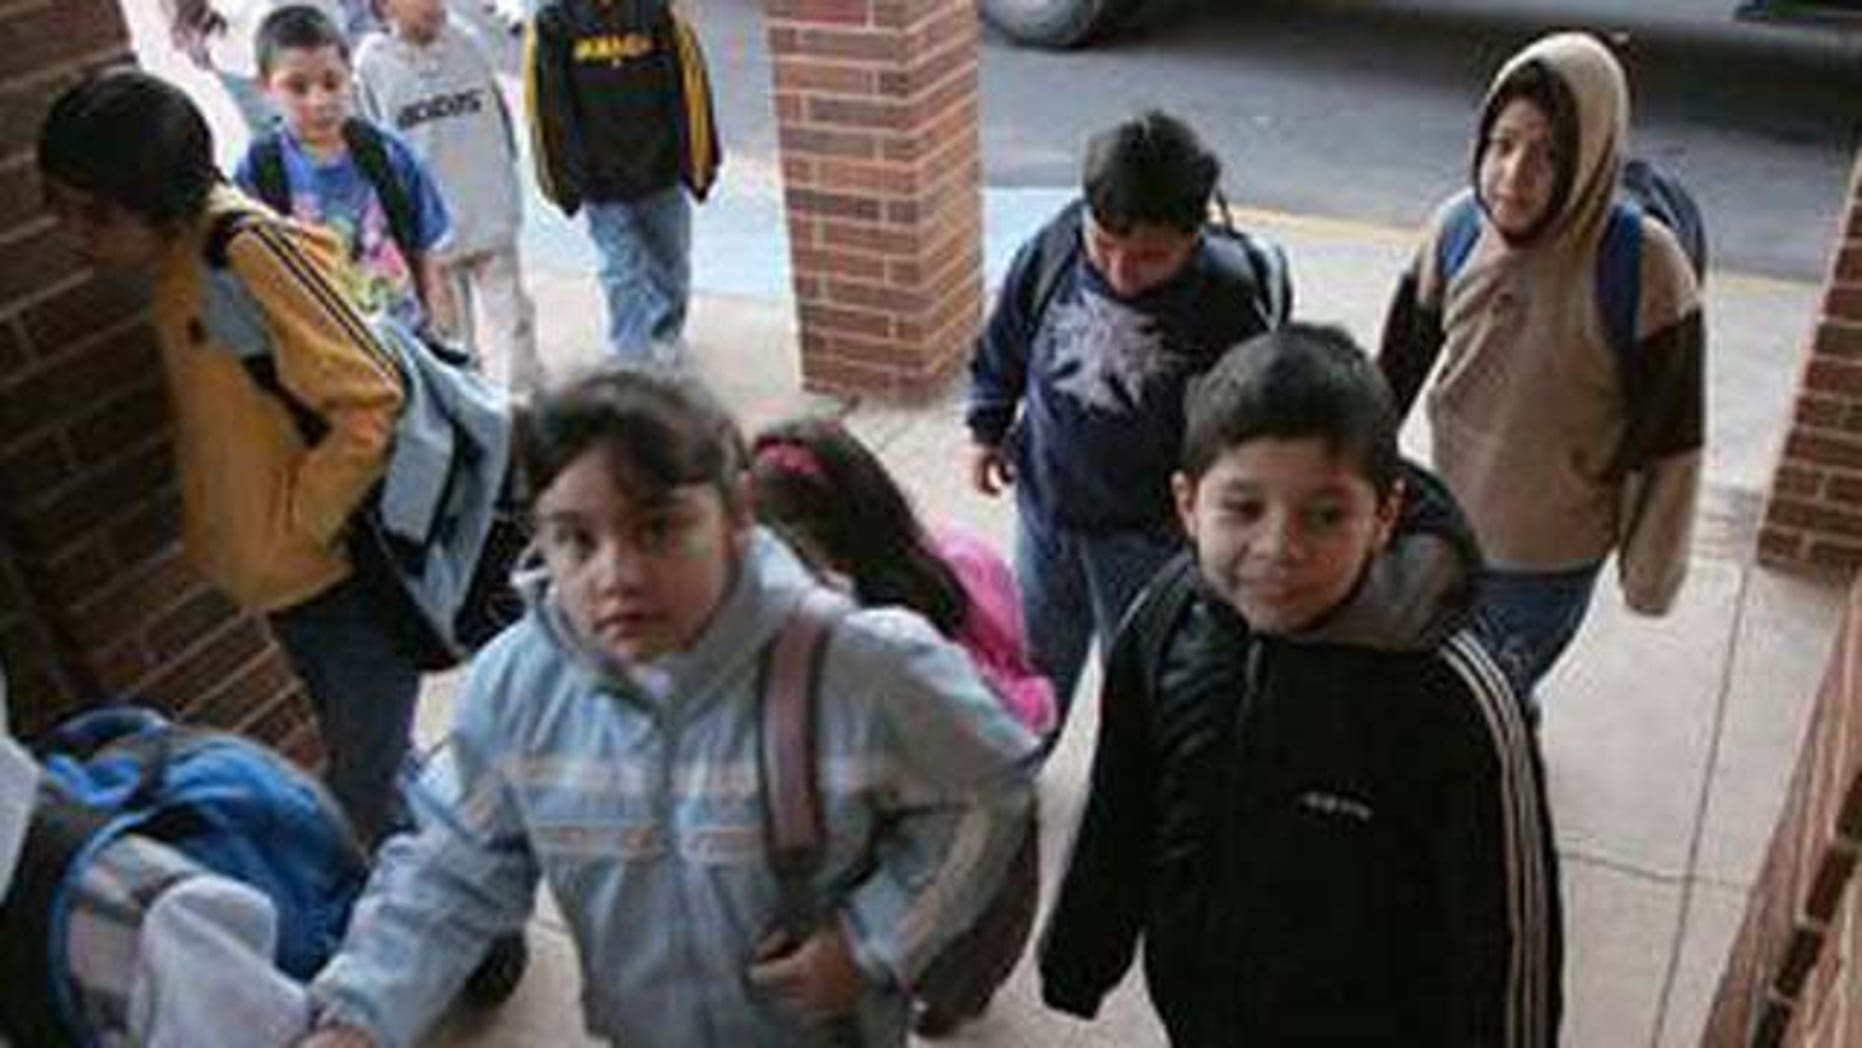 ** ADVANCE FOR WEEKEND OF MARCH 19-20 **Students make their from their buses to school at the Lyman Hall Elementary school in Gainesville, Ga., Wednesday, Feb. 23, 2005. Lyman Hall Elementary is listed as 94 percent Hispanic. (AP Photo/Ric Feld)